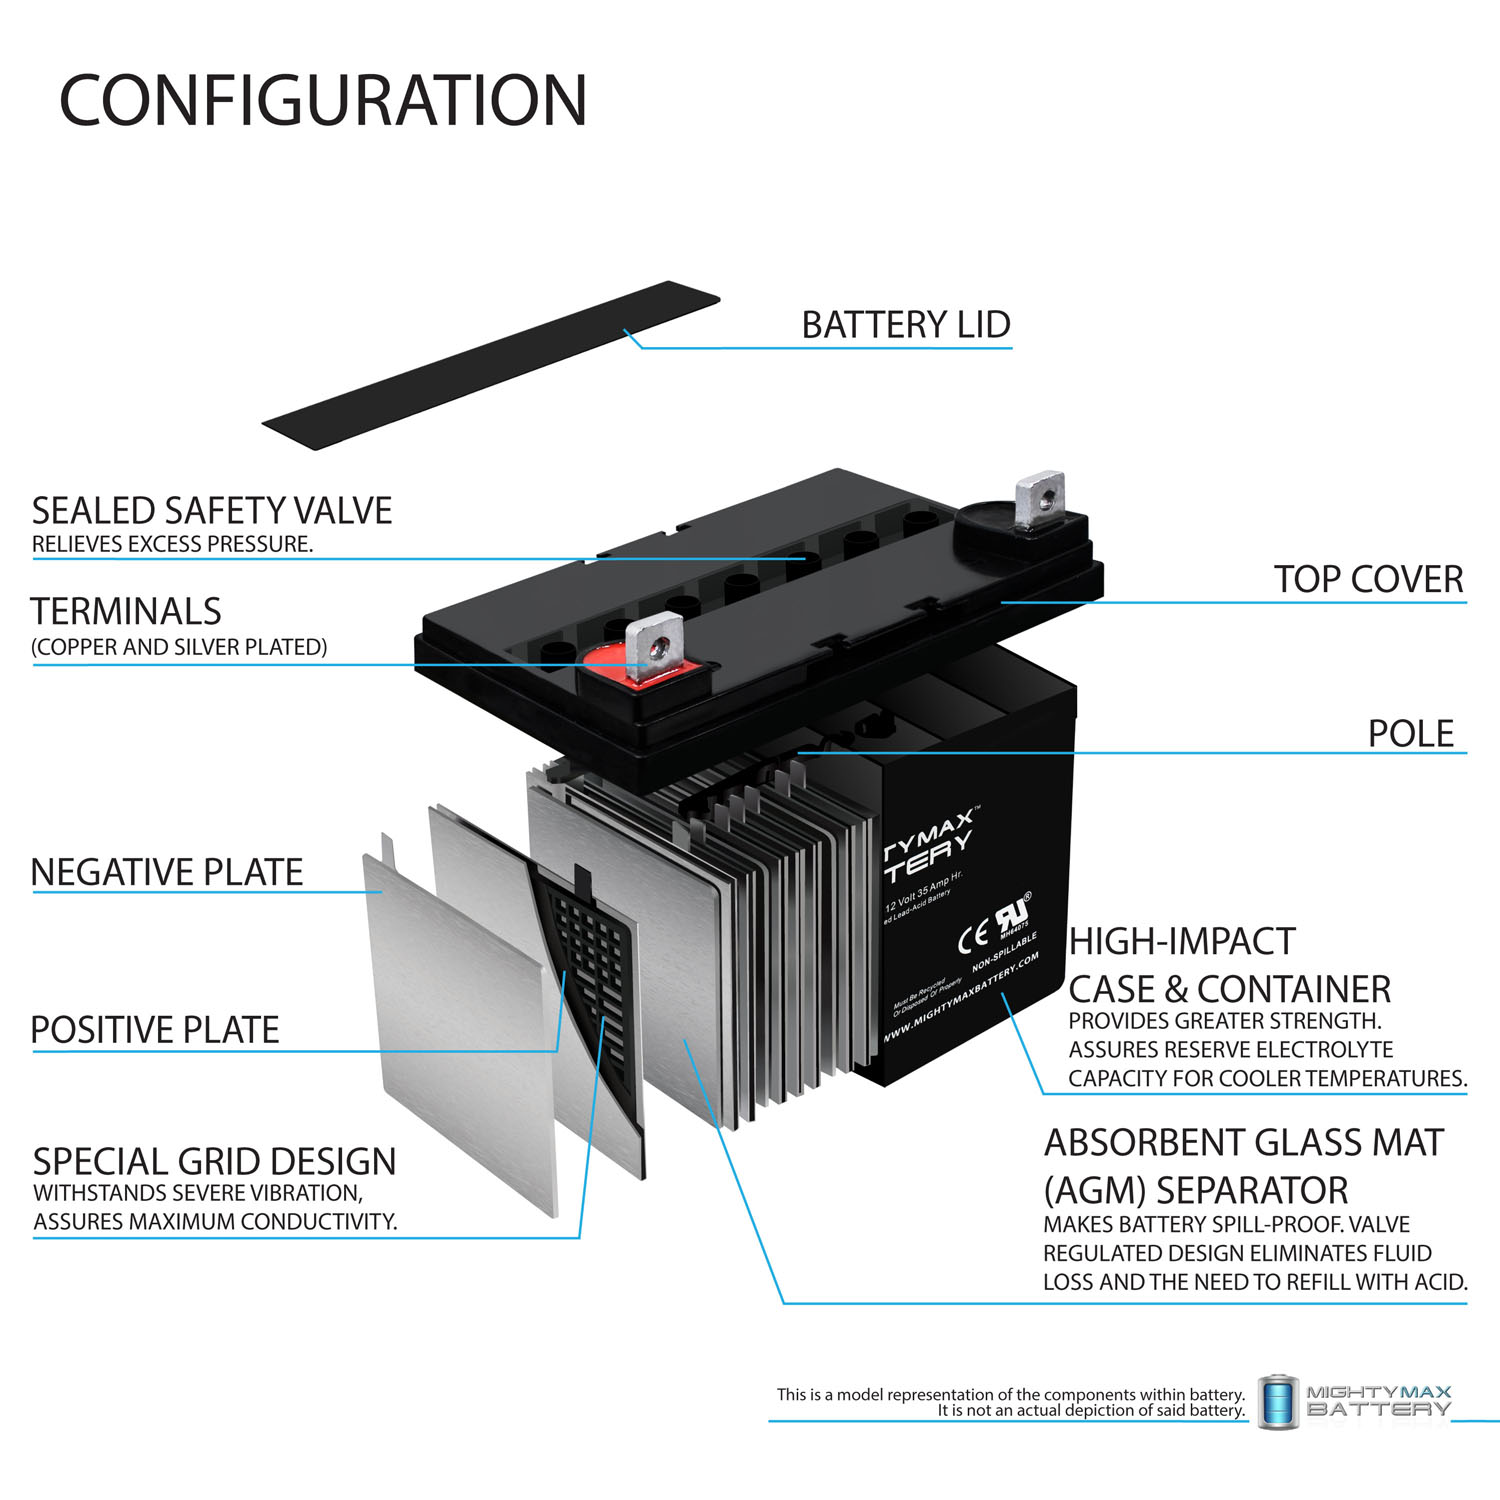 ML35-12 - 12 VOLT 35 AH SLA BATTERY - PACK OF 4 - 2